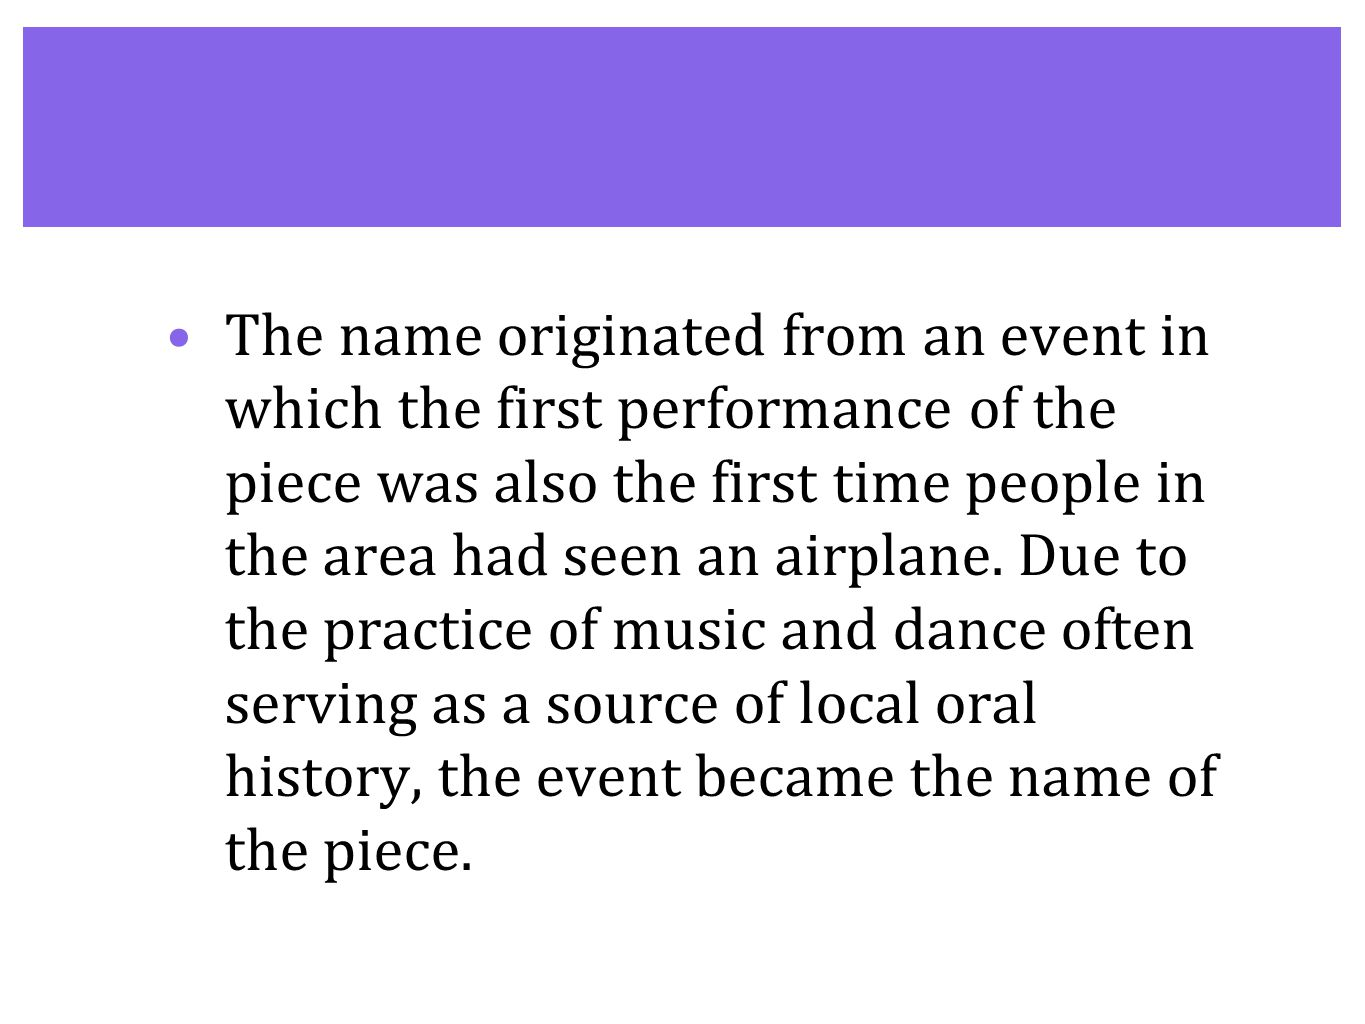 The name originated from an event in which the first performance of the piece was also the first time people in the area had seen an airplane.